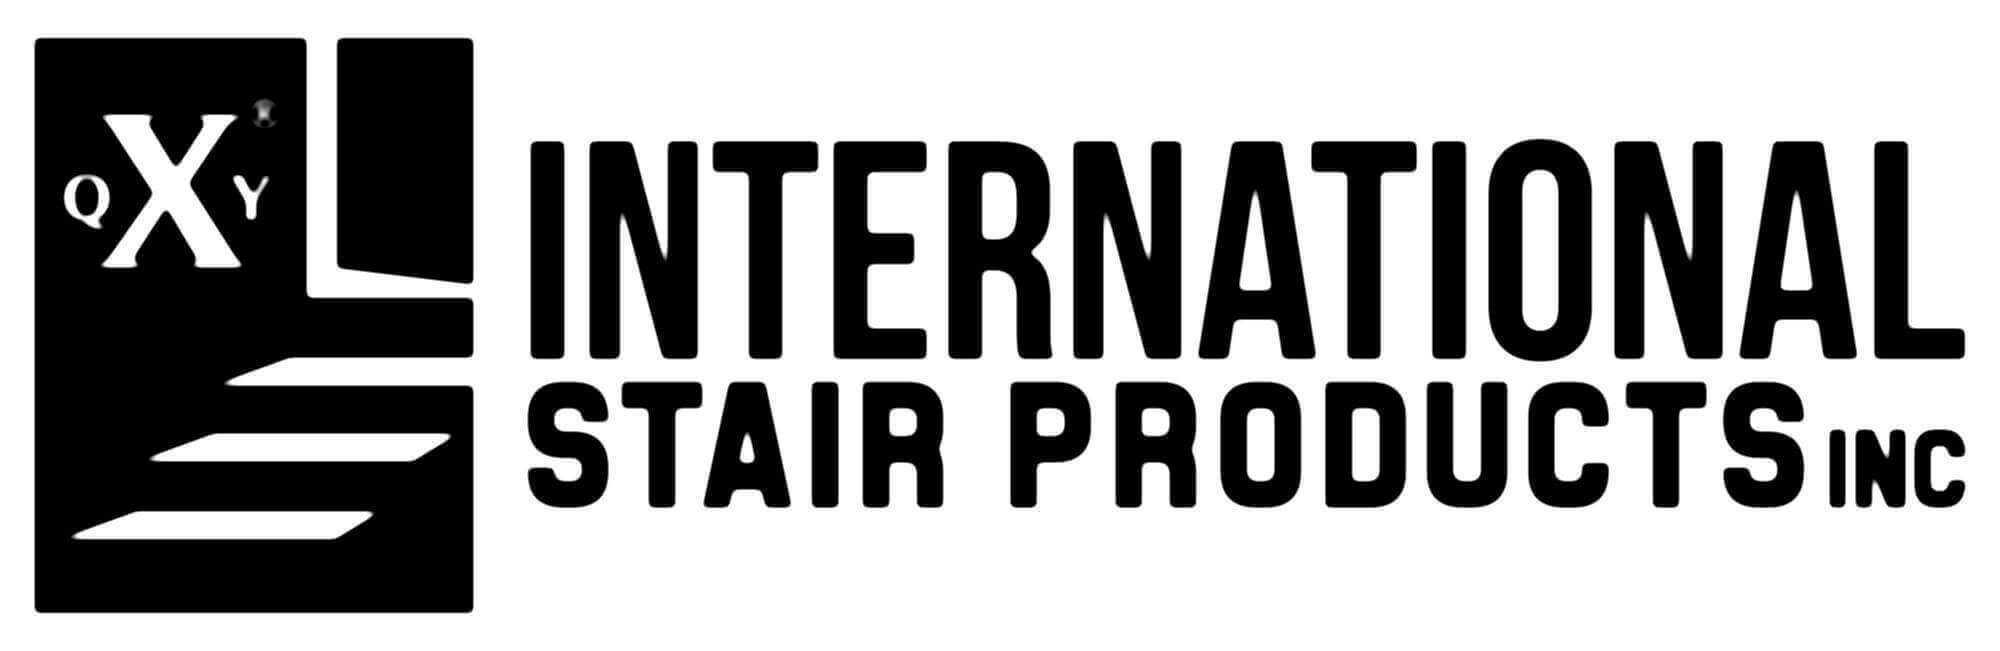 Stair Parts International Stair Products Inc.   Serving DFW ...